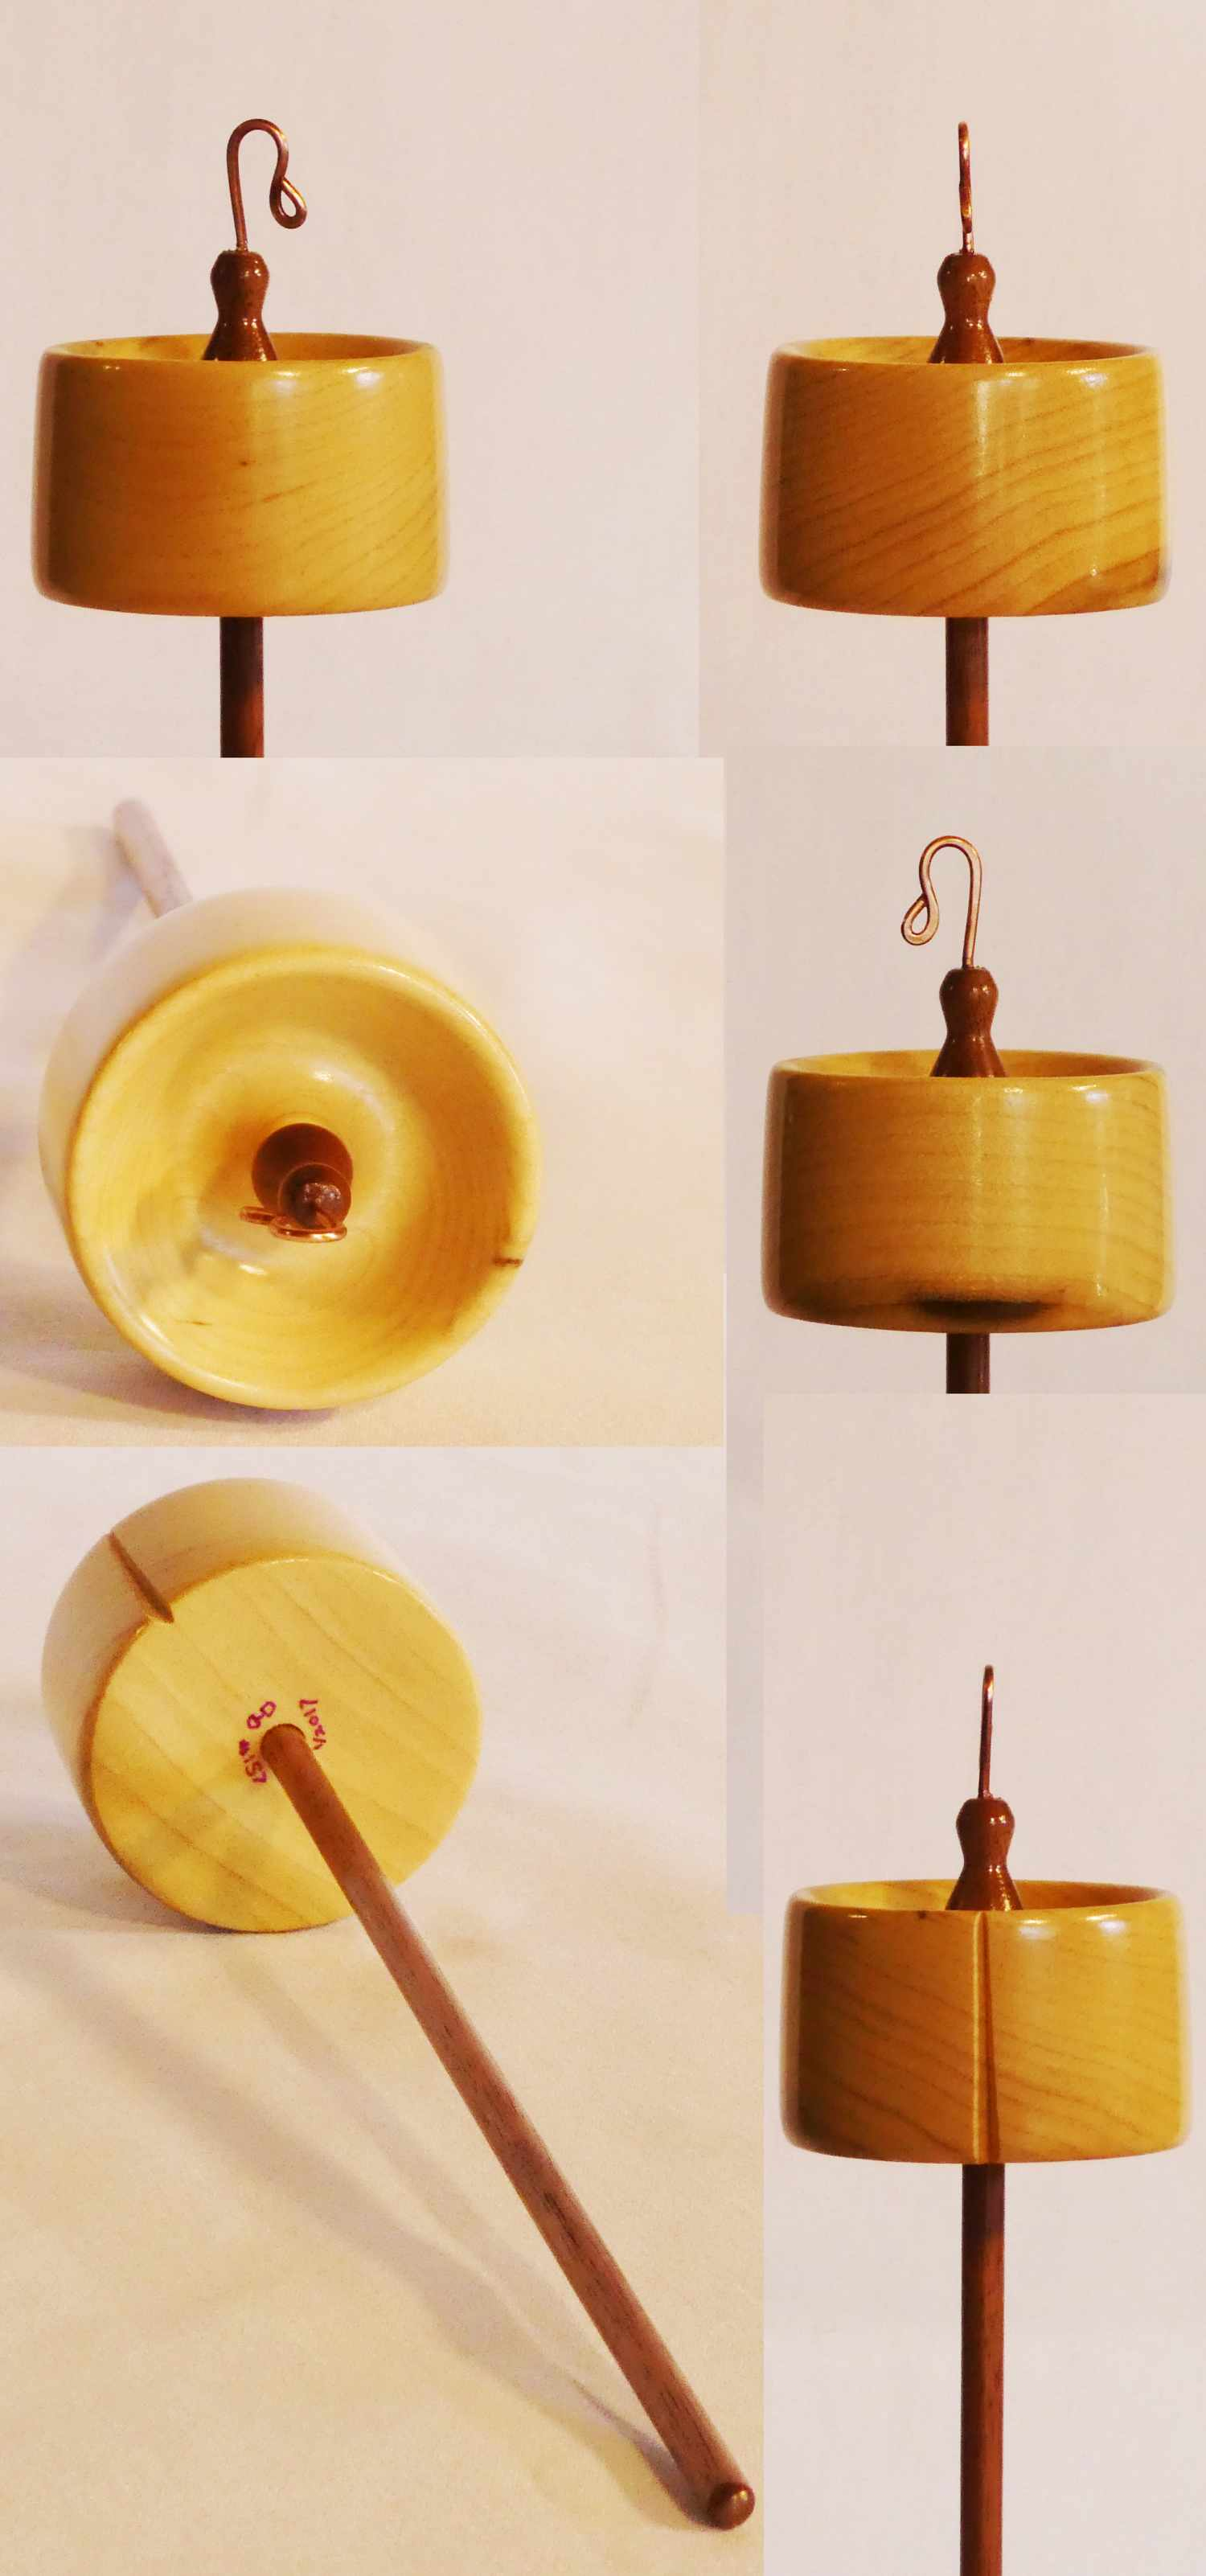 Handcrafted top whorl drop spindle turned from Tulip poplar and Walnut by Cynthia D. Haney.  Signed number 157 weighs 1 oz.